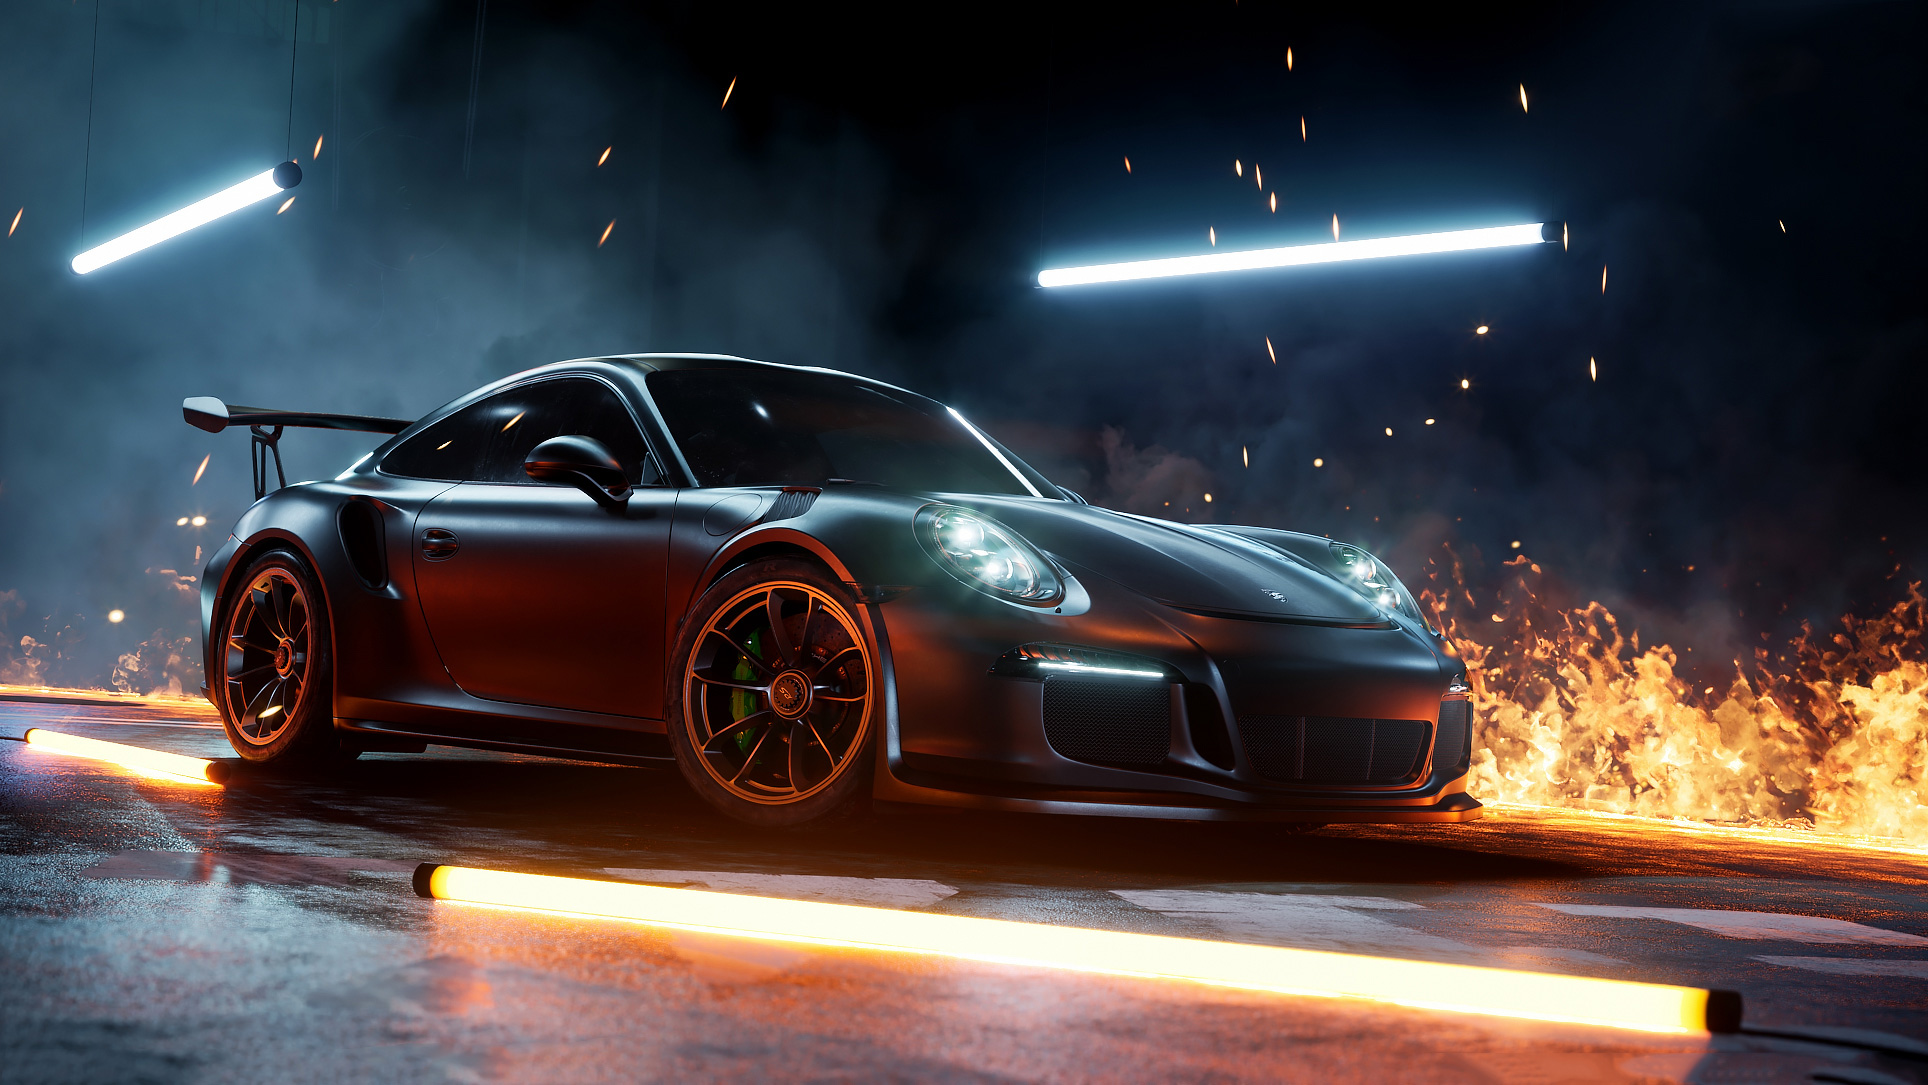 Sport Cars Wallpaper 4k: Porsche 911 Sport Car, HD Cars, 4k Wallpapers, Images